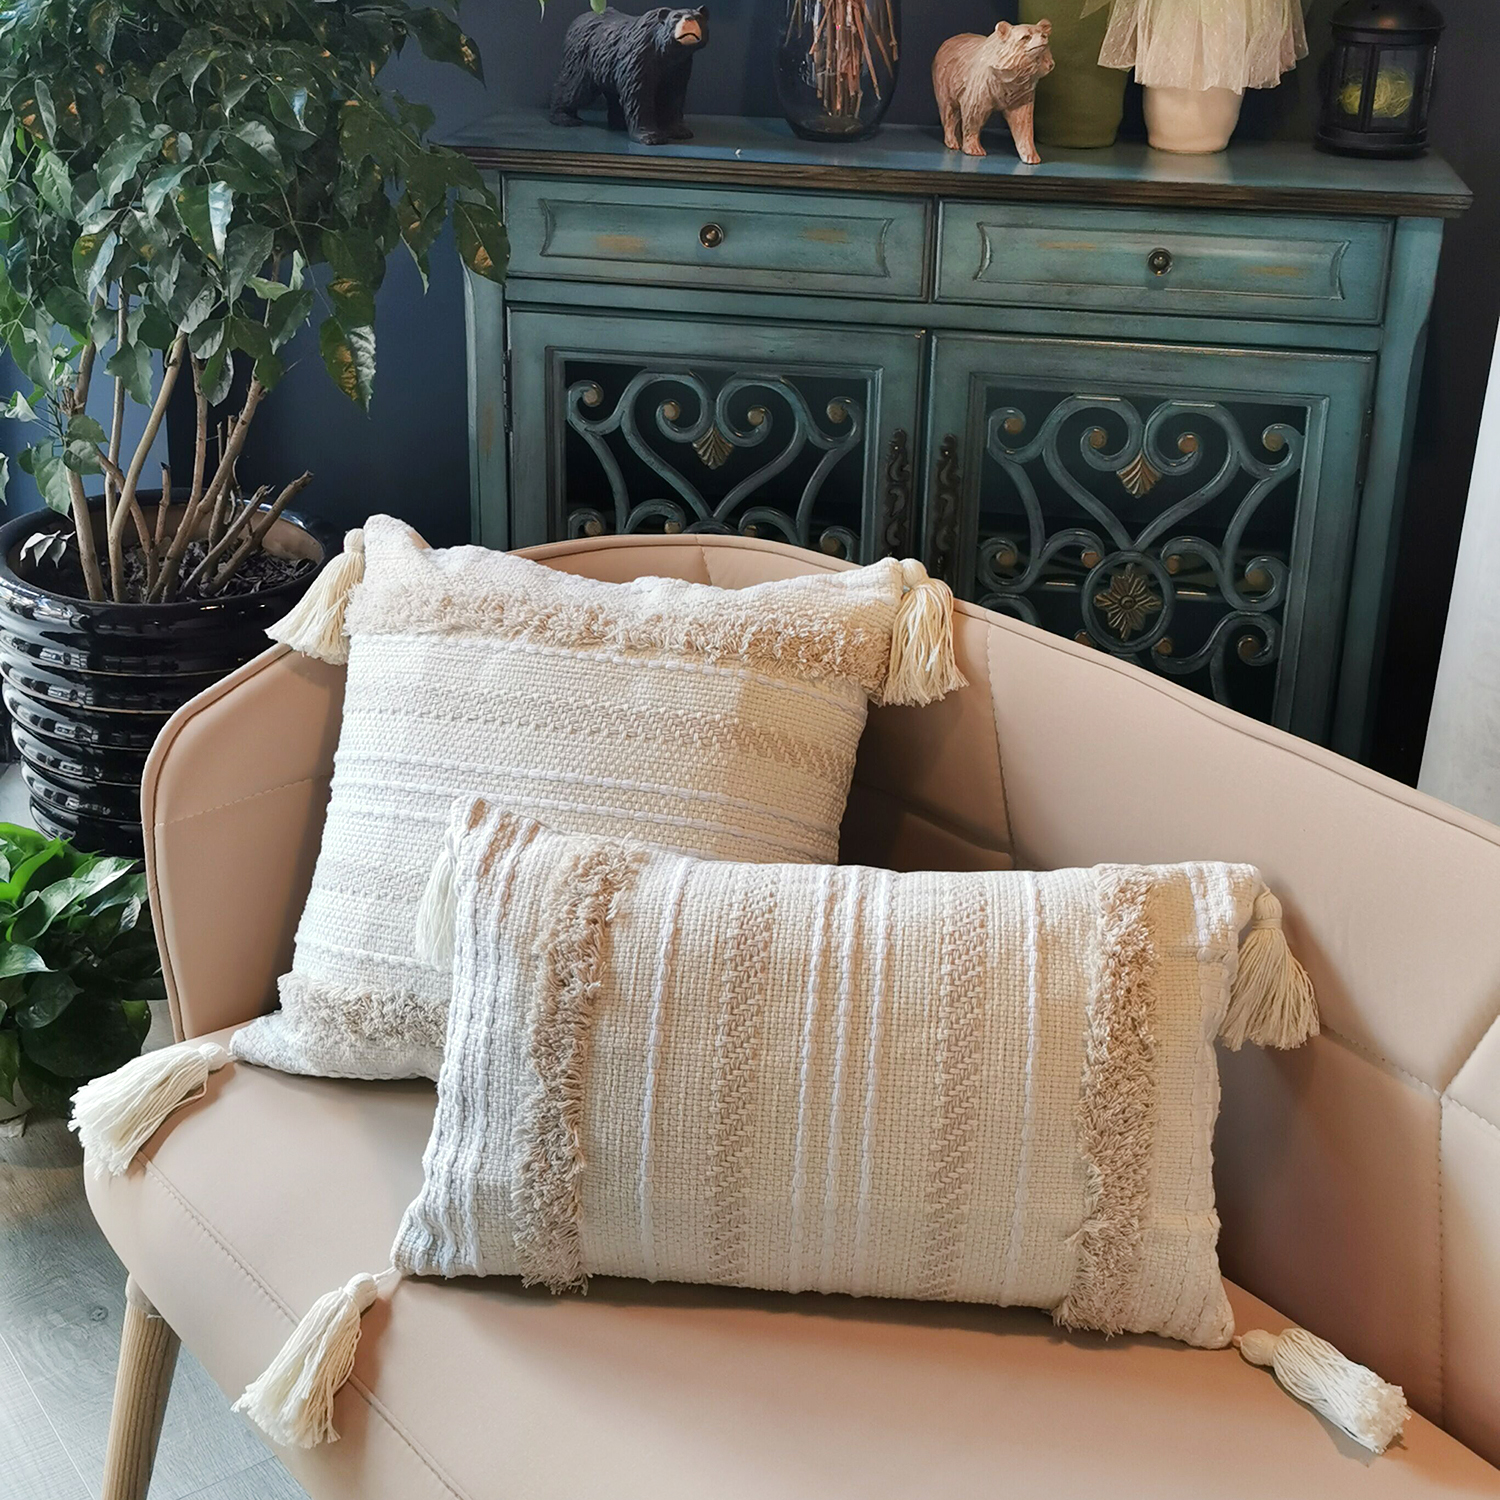 Pillow Covers Boho Decorative Soft Tufted Pillowcase With Tassels Decorative Pillow Cushion Cover For Sofa Couch Chair Car Seat